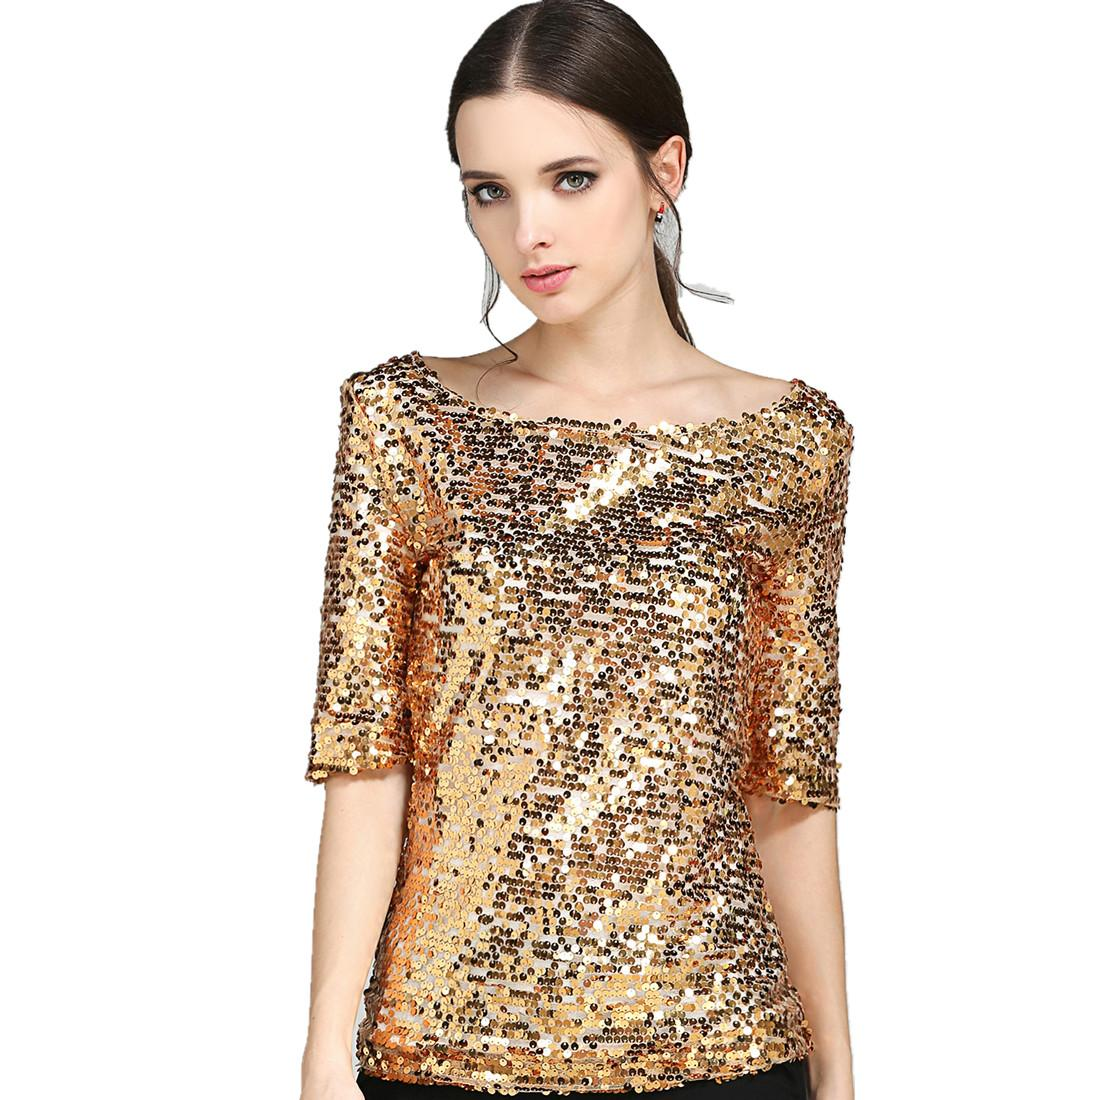 2019 New 2019 Fashion Women Sexy Loose Sequin Glitter Blouses Summer Casual  Shirts Vintage Streetwear Party Tops From Lovegucci8888 91fe6b71ff75